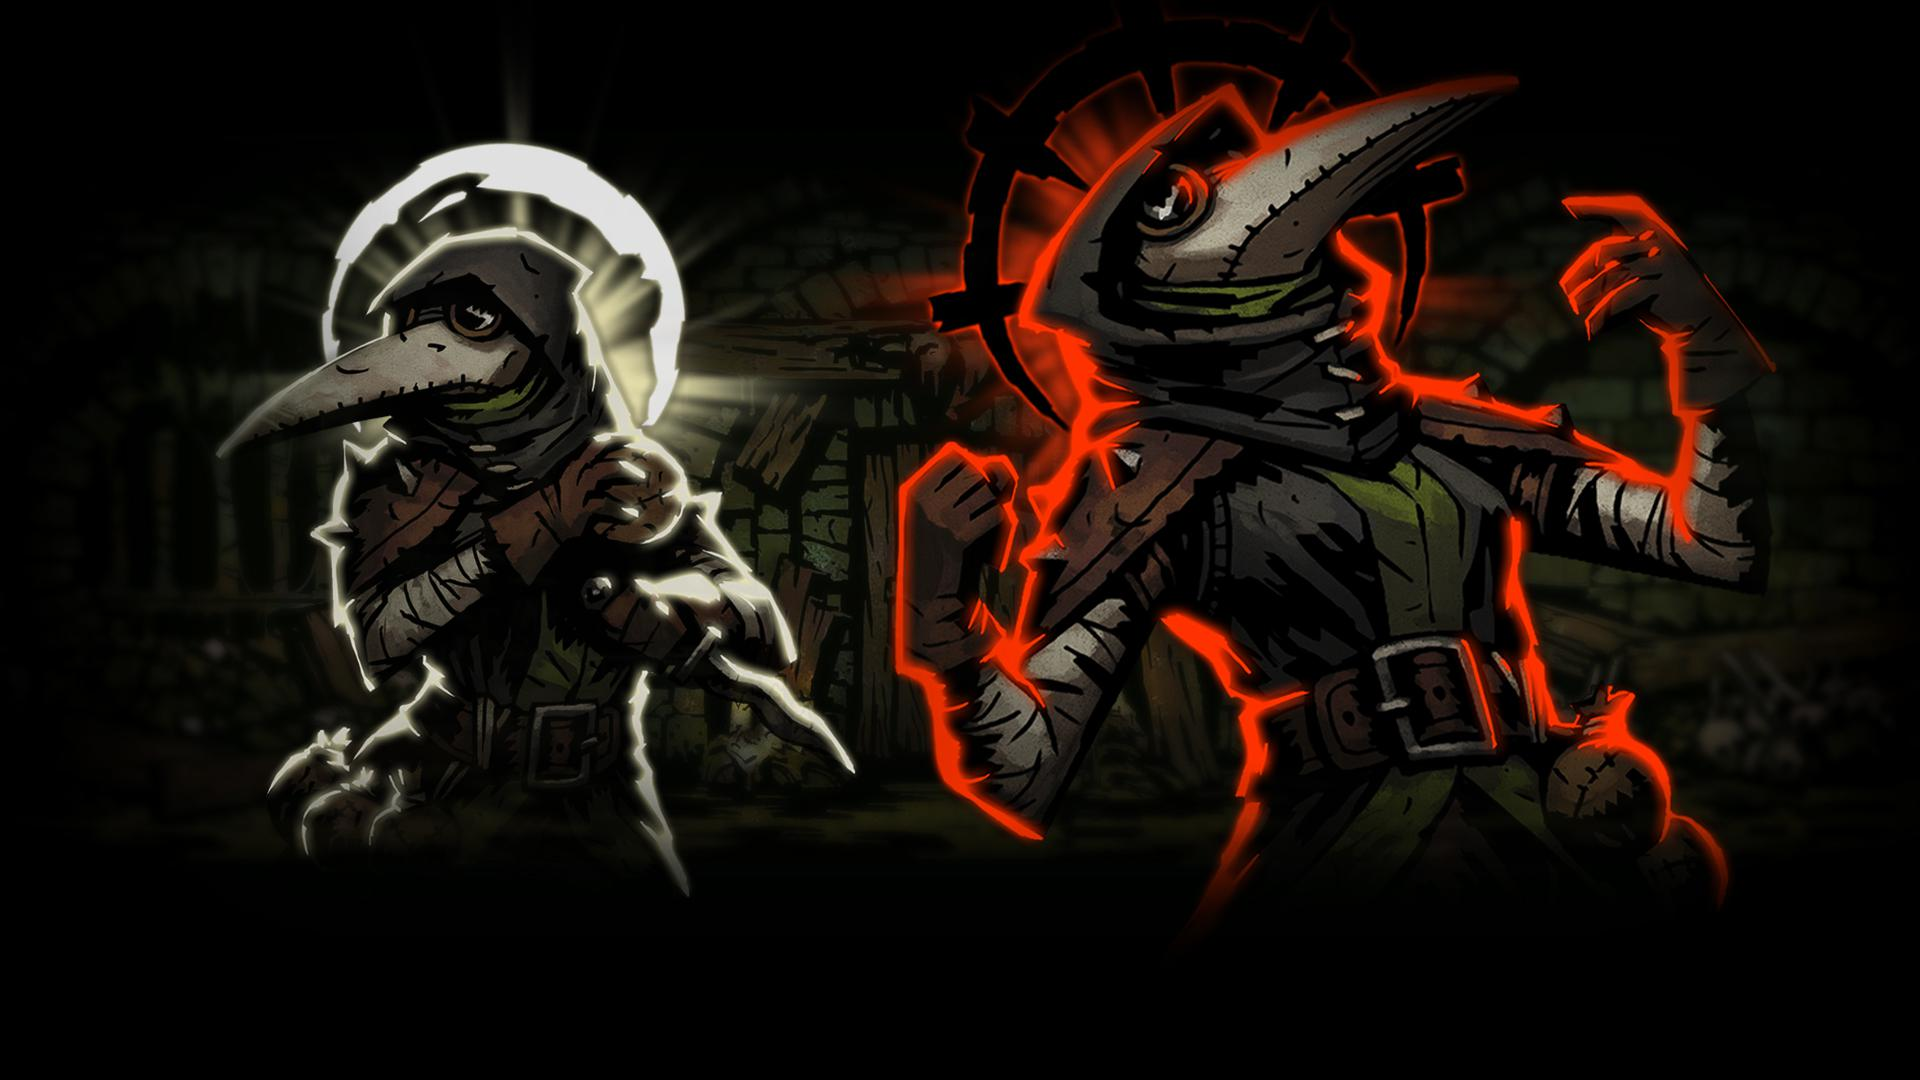 Darkest Dungeon Wallpaper  image collections of